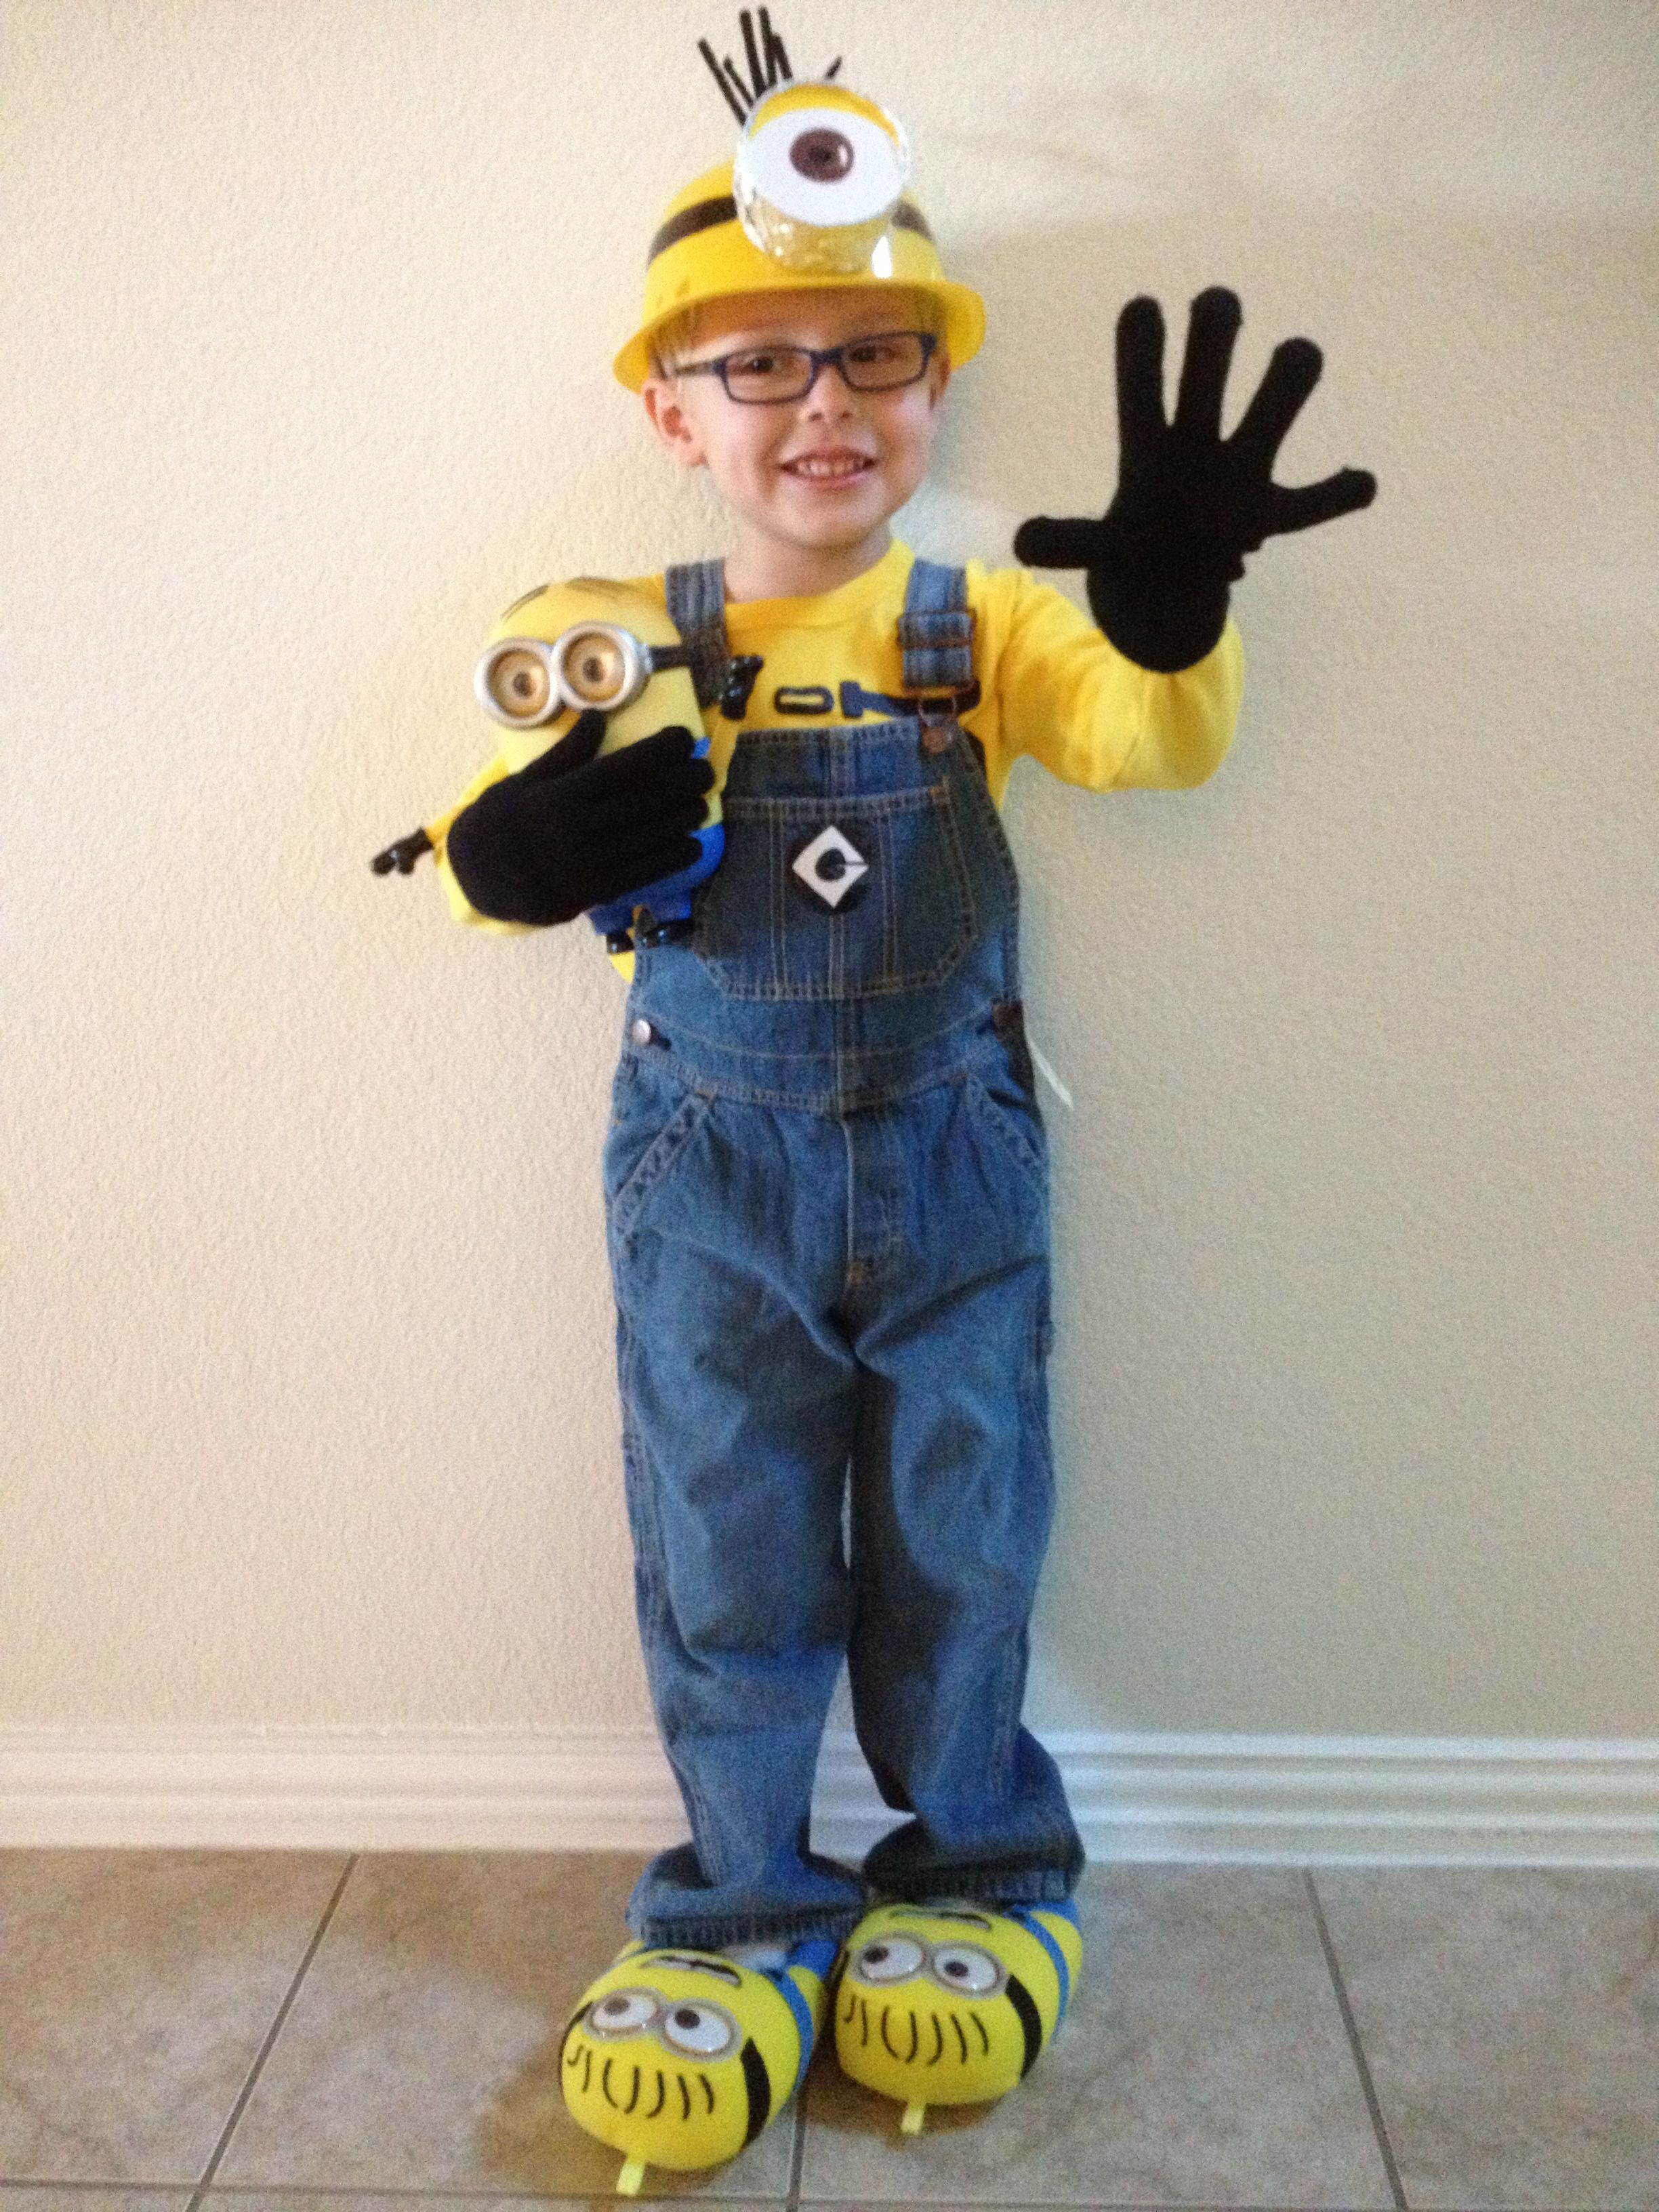 My sons halloween costume diy despicable me minion costume my sons halloween costume diy despicable me minion costume oshkosh shirt and overalls sticker for gru symbol biocorpaavc Image collections